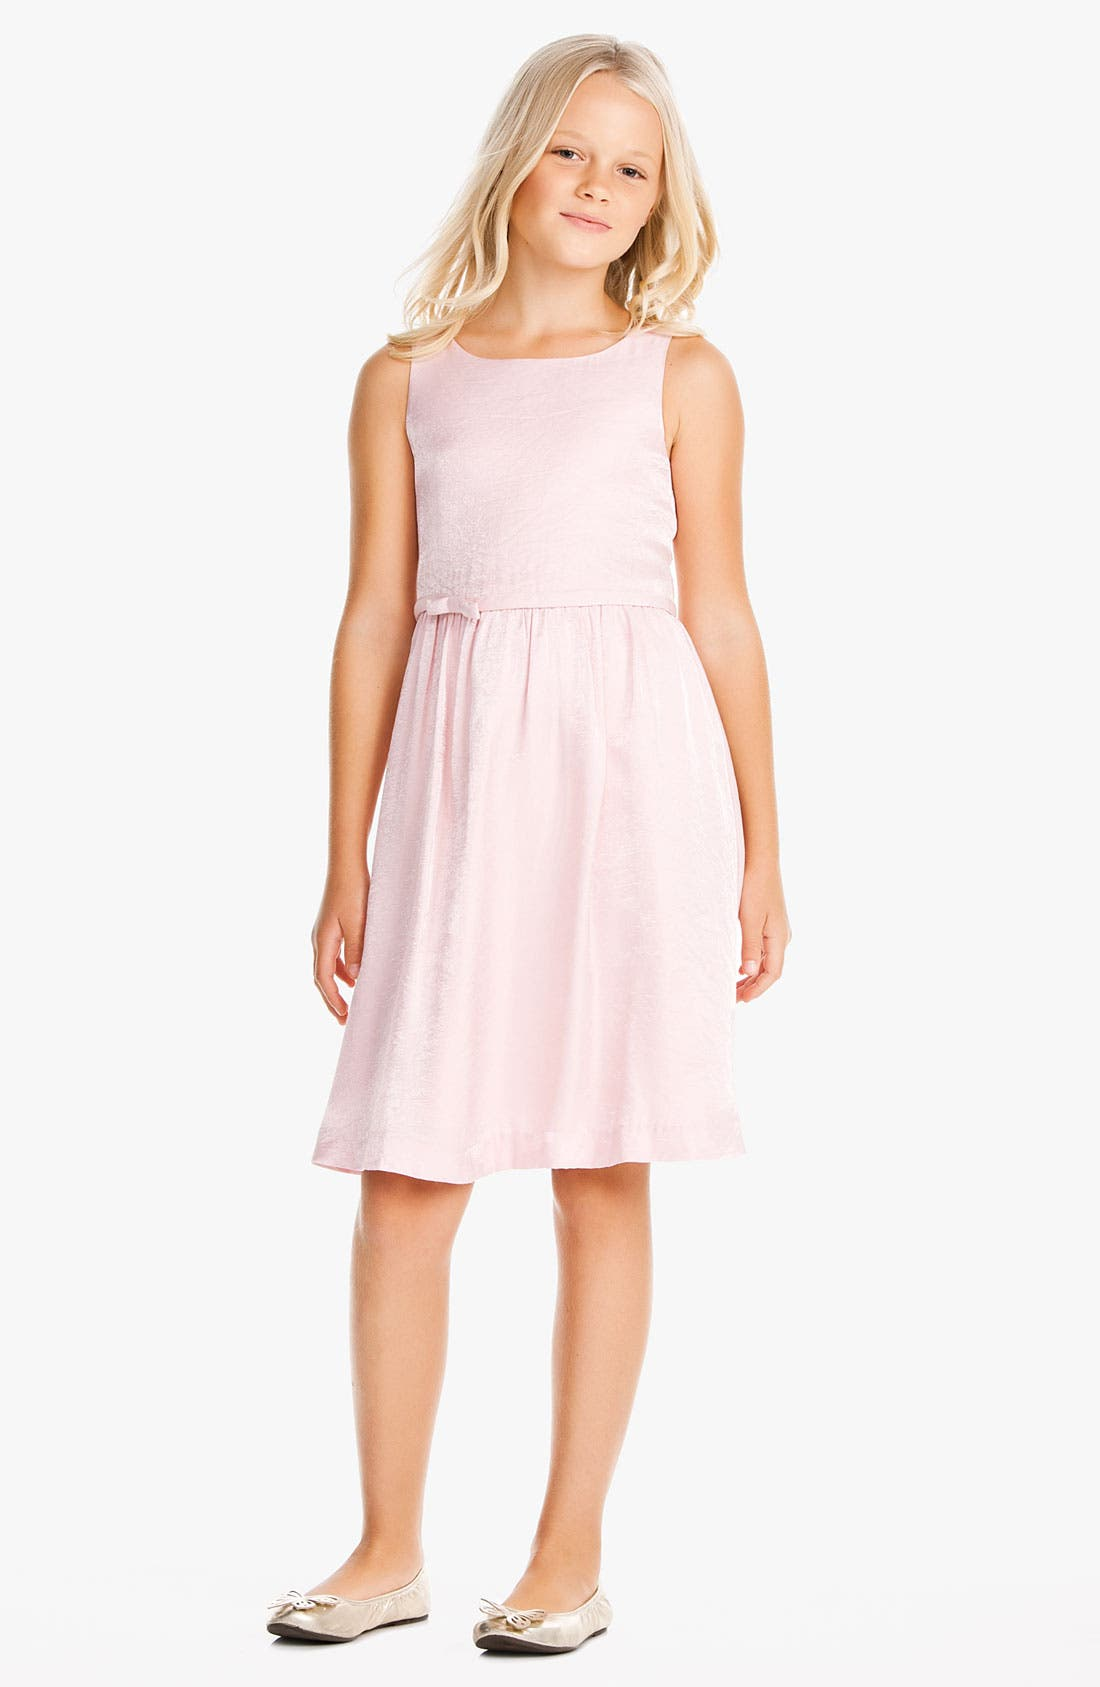 Main Image - BLUSH by Us Angels 'Milly' Dress (Big Girls)